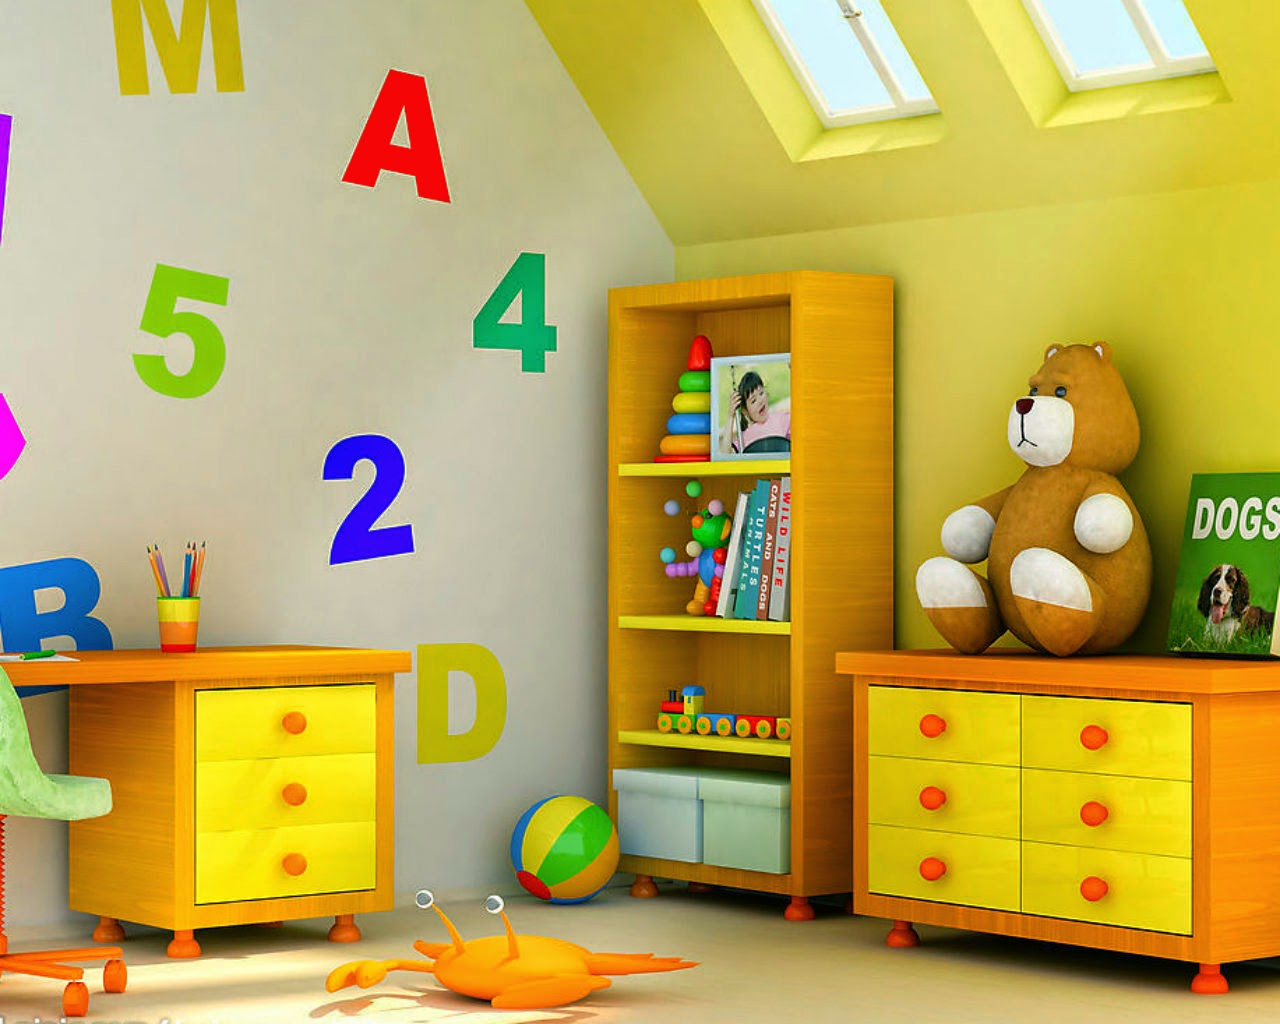 Cute Teddy Bear Wallpapers For Little Kids And Children: wallpaper for childrens room